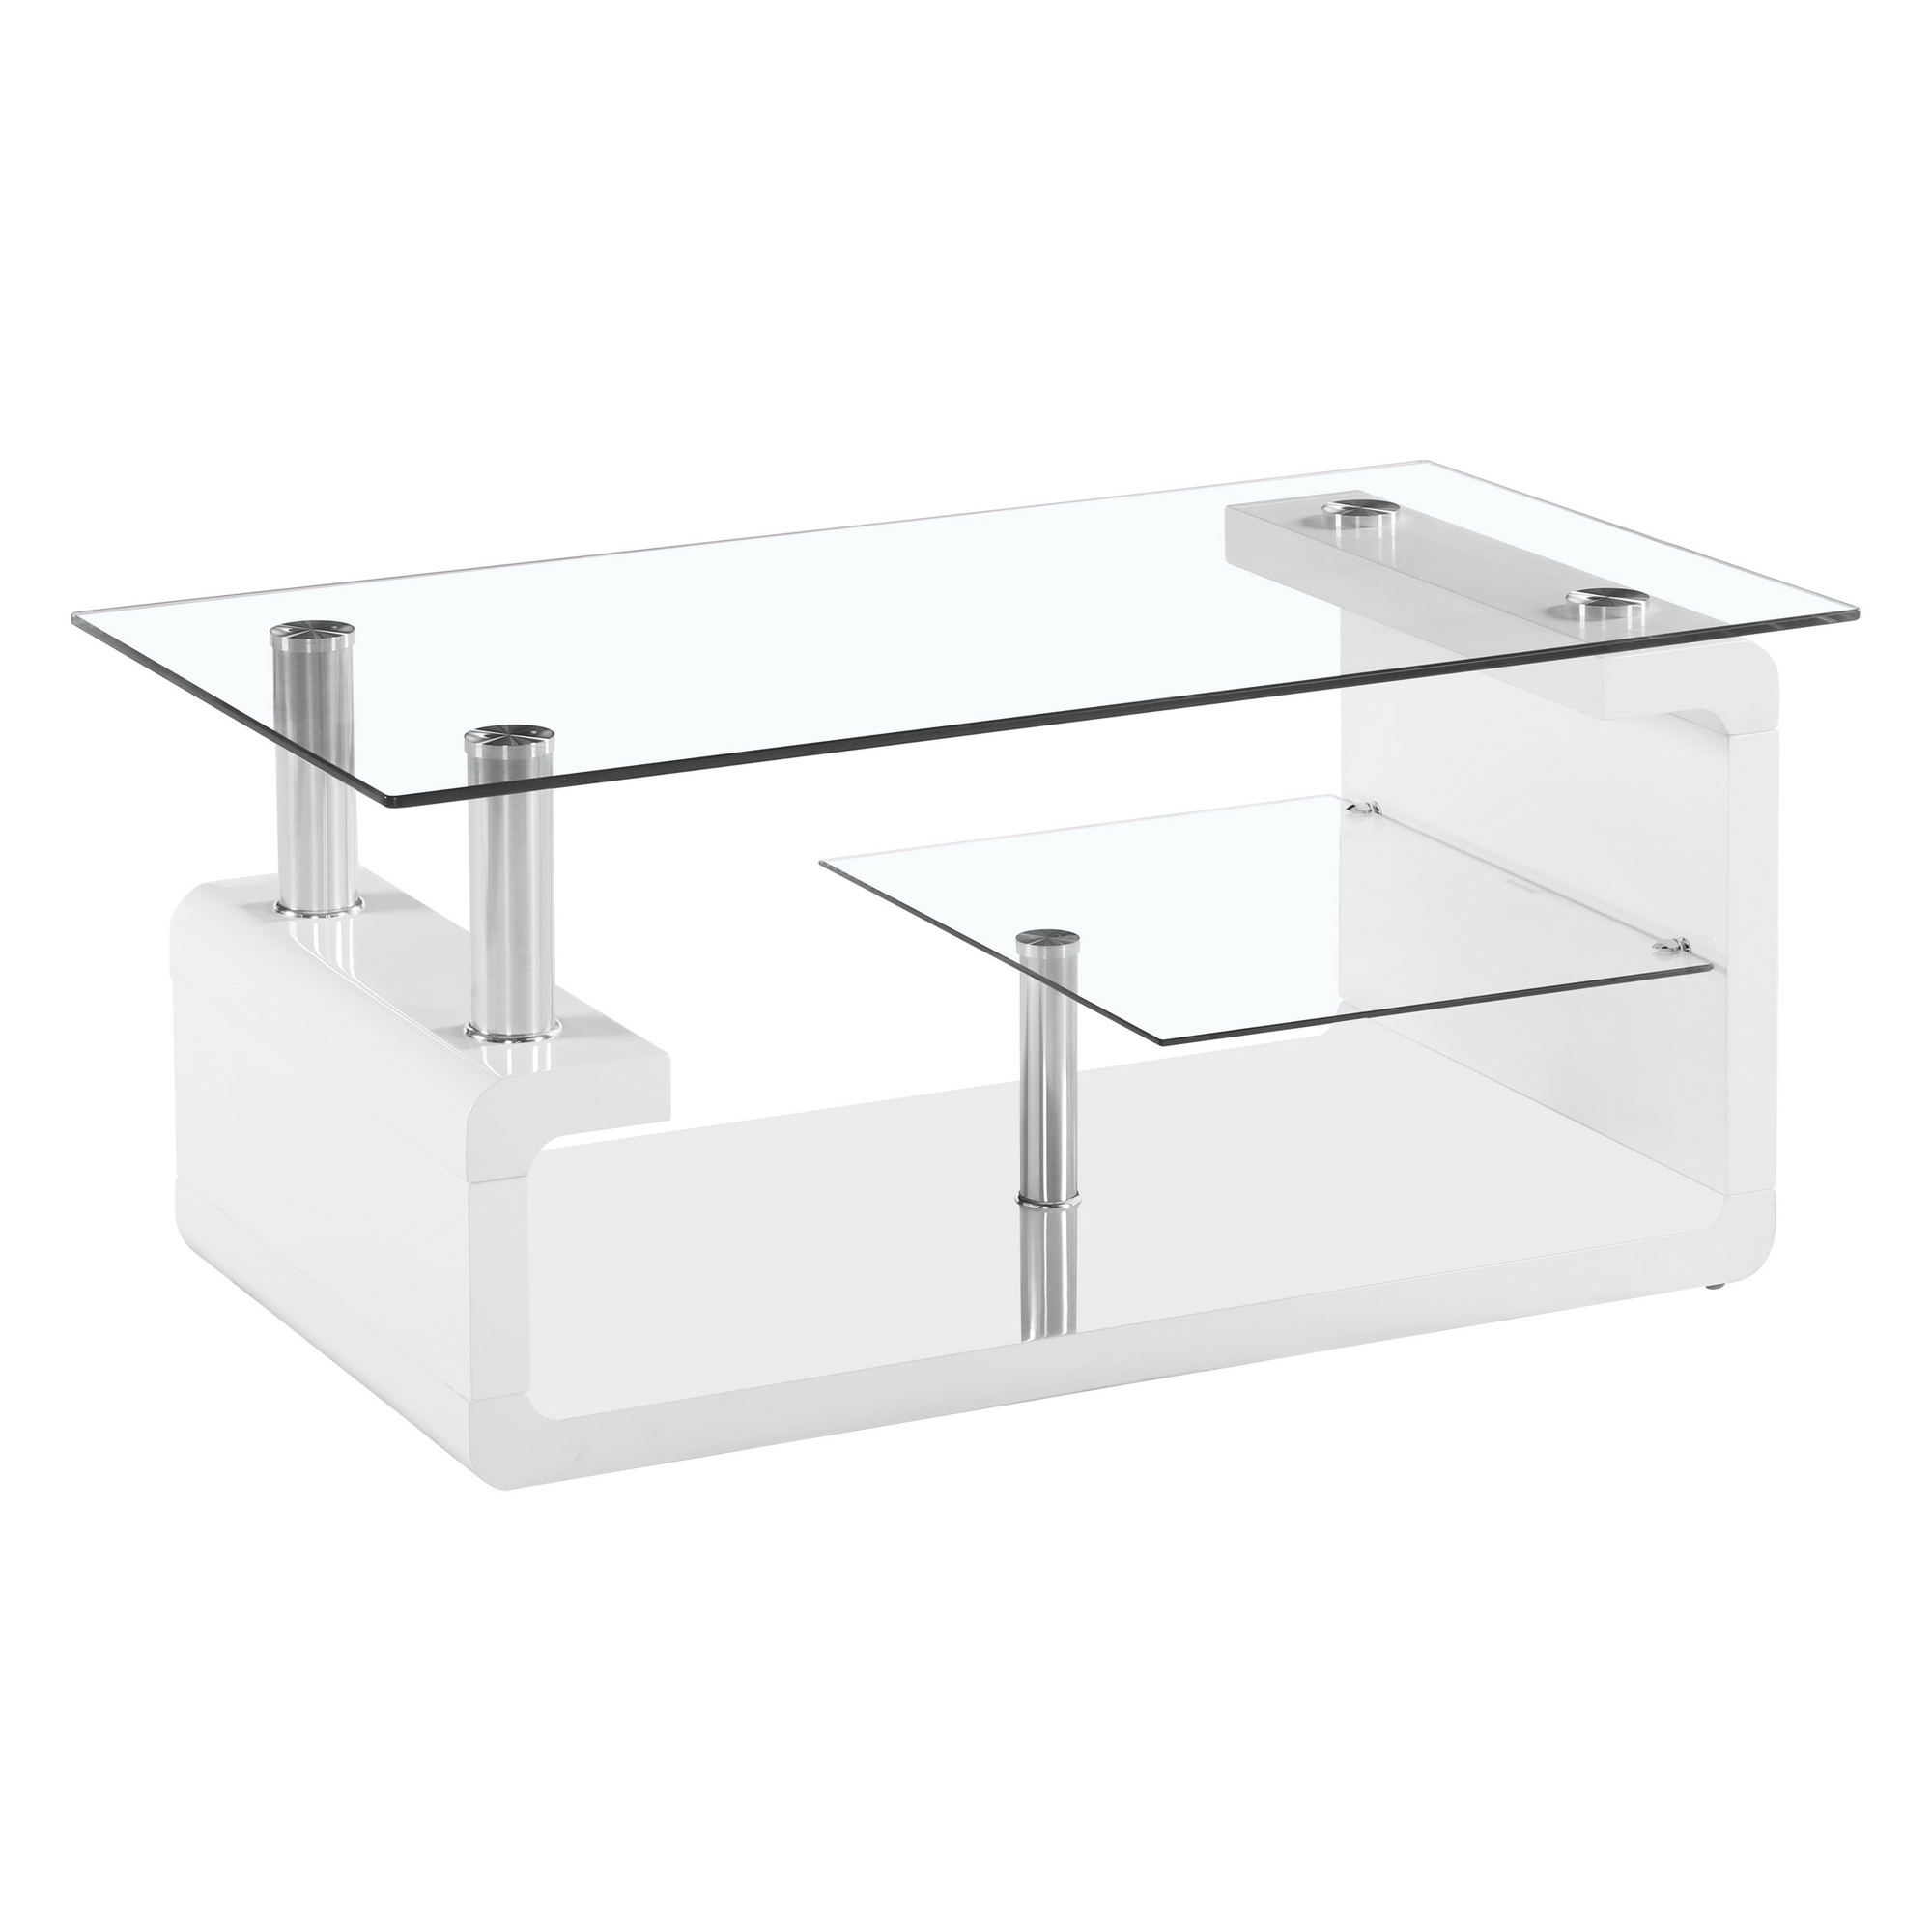 Elegant Two Tier Glass Coffee Table with High Glossy Base